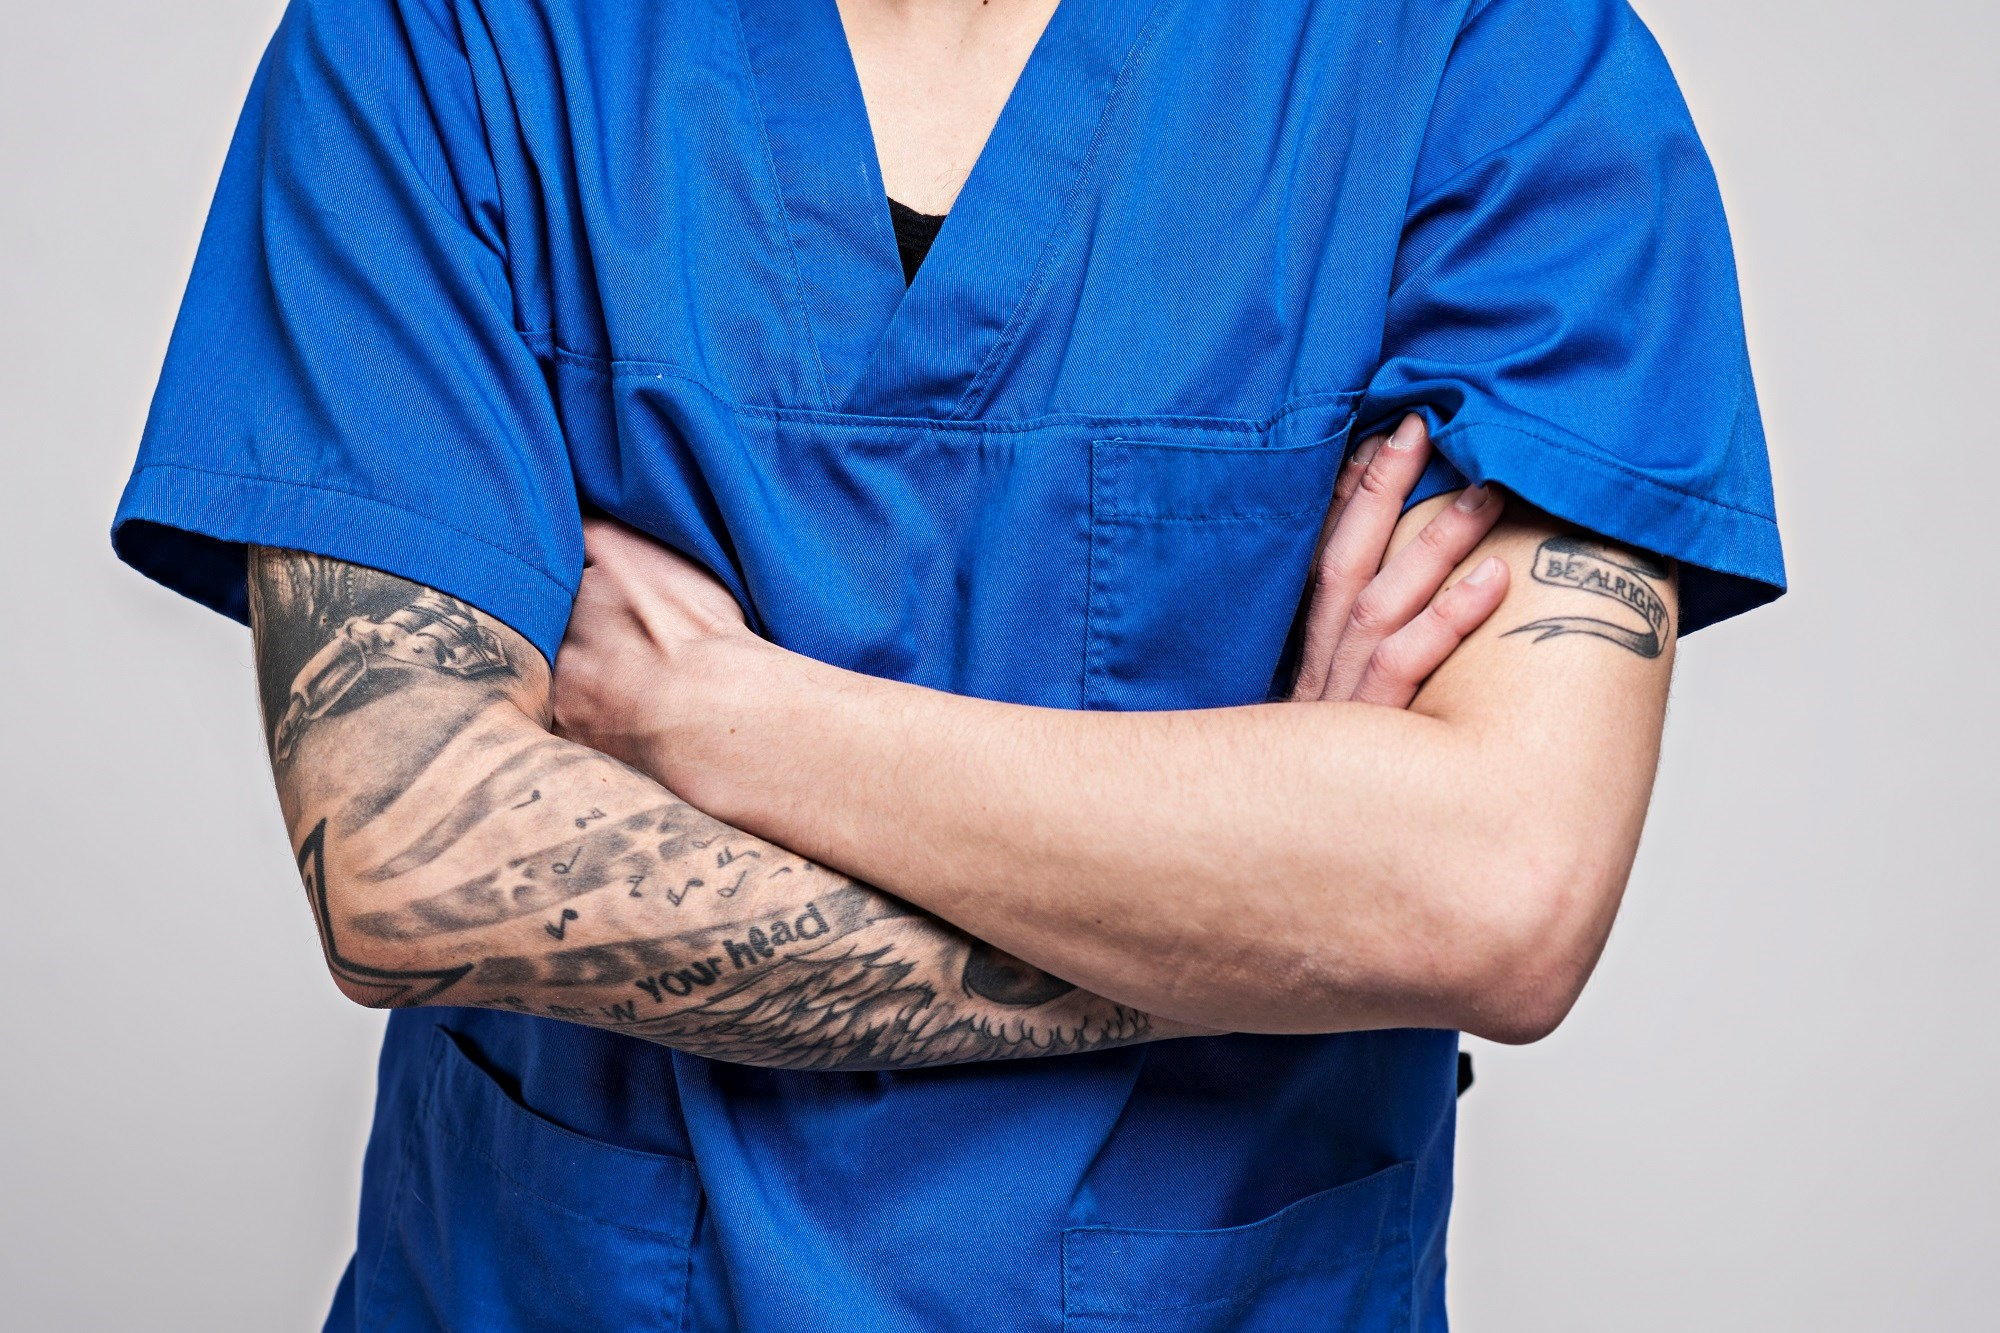 Patients Comfortable With Doctors Having Tattoos, Piercings